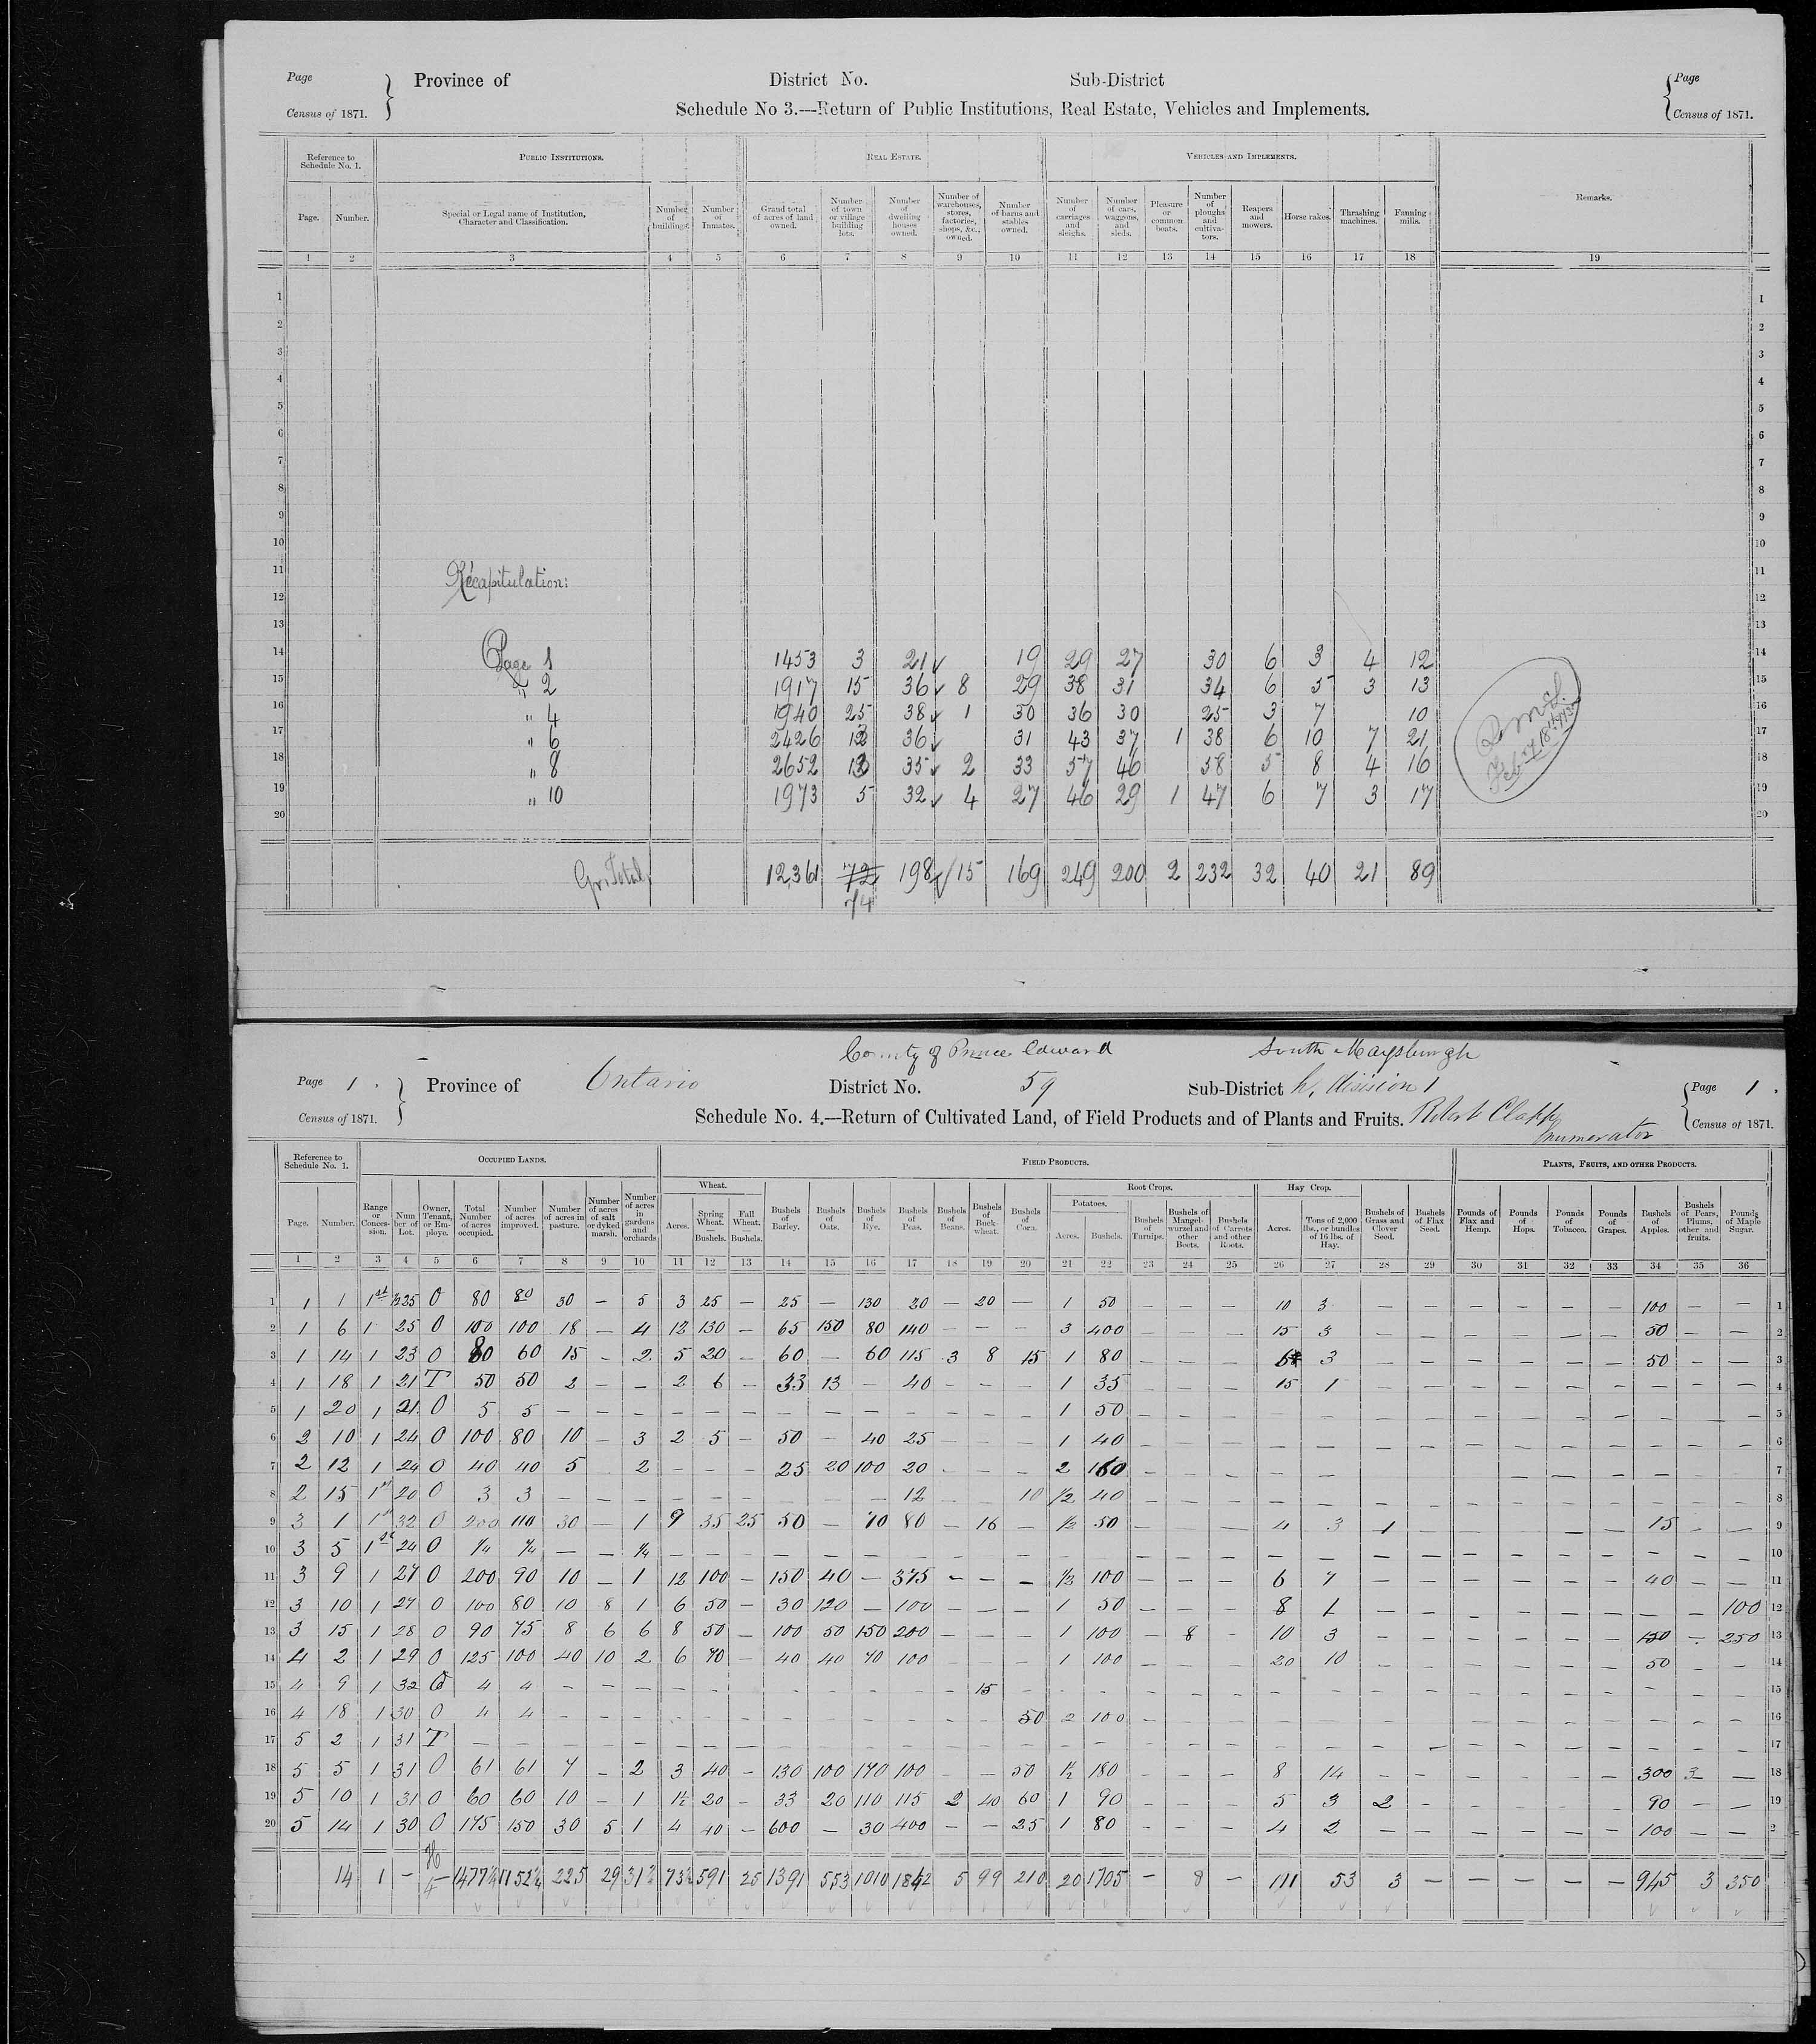 Title: Census of Canada, 1871 - Mikan Number: 142105 - Microform: c-9990